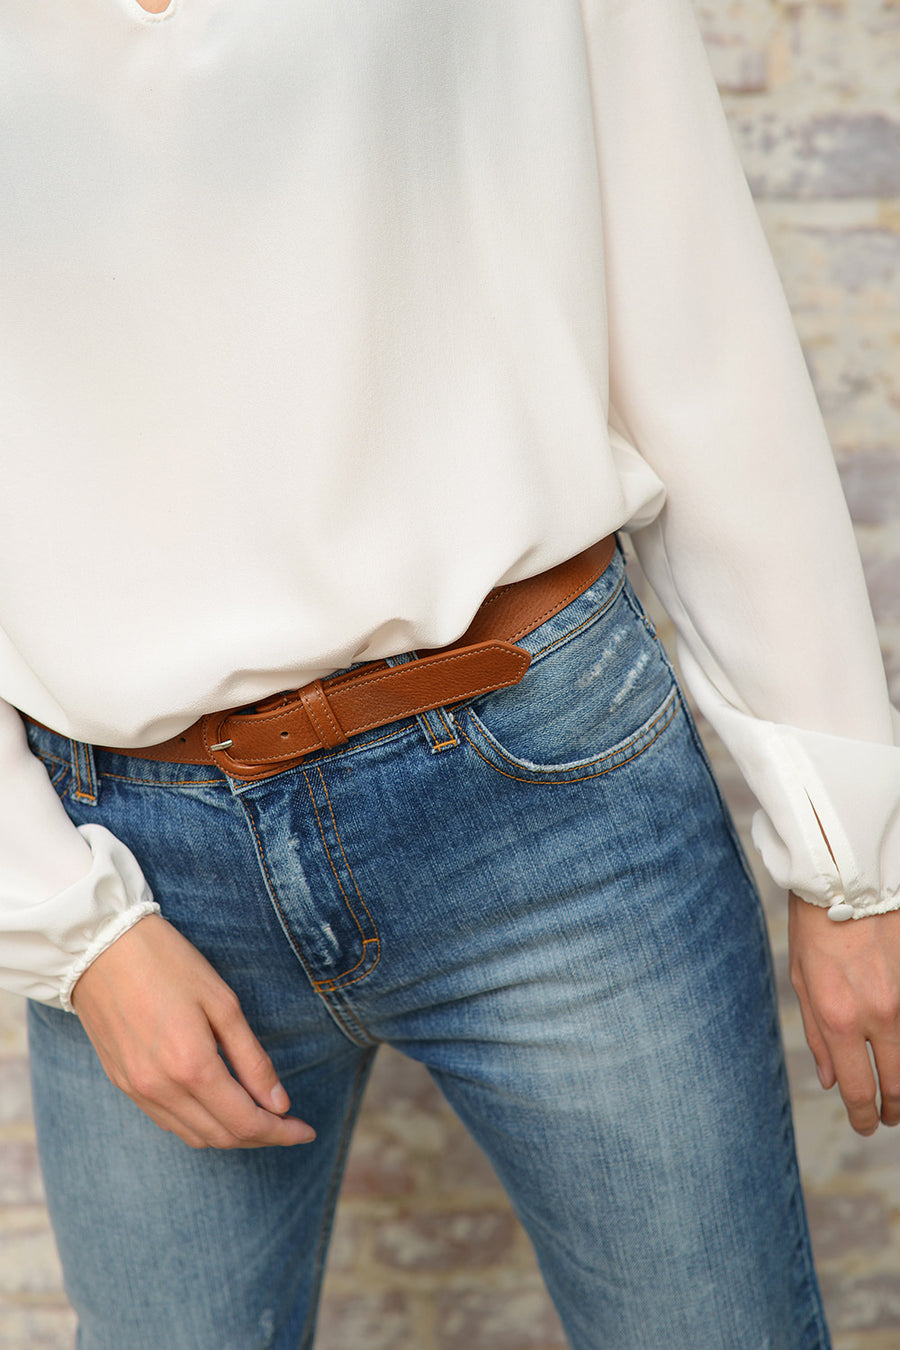 Cinhorel Ma Belt - sella